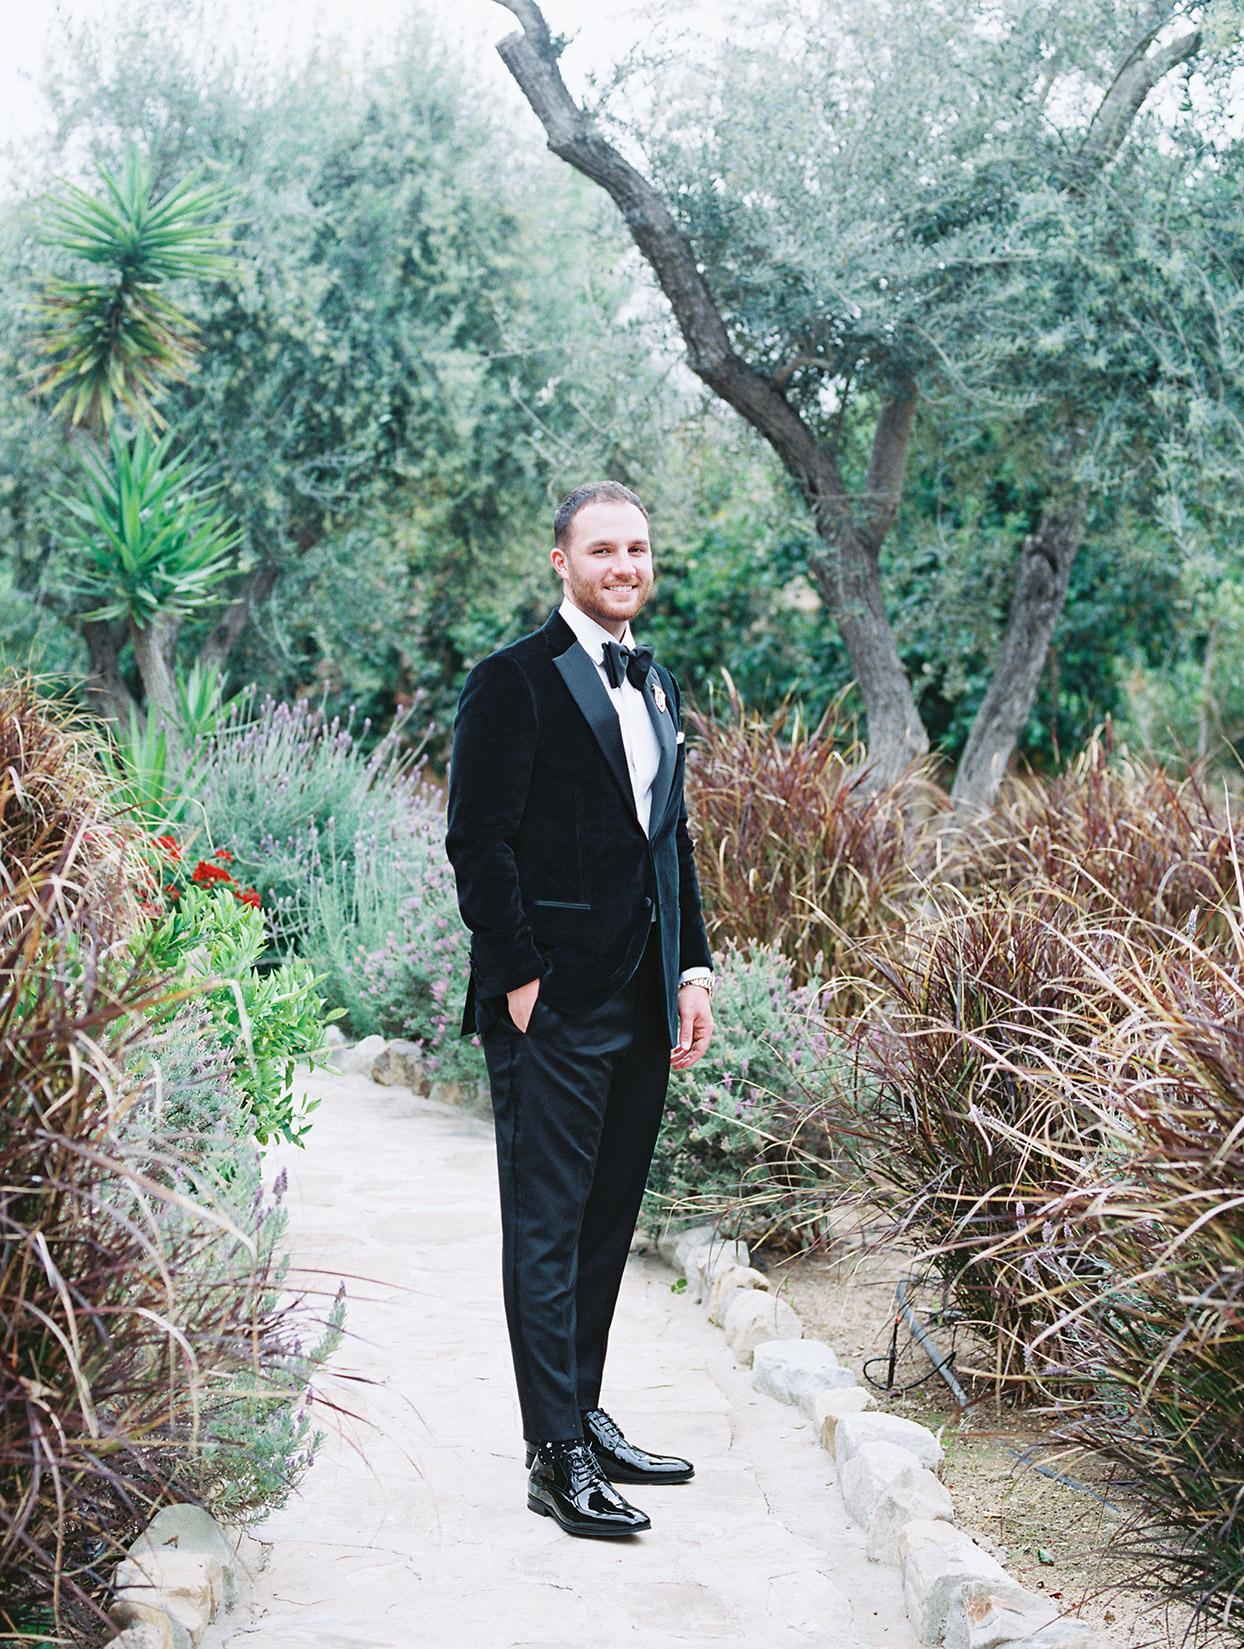 raina salih wedding groom on stone path